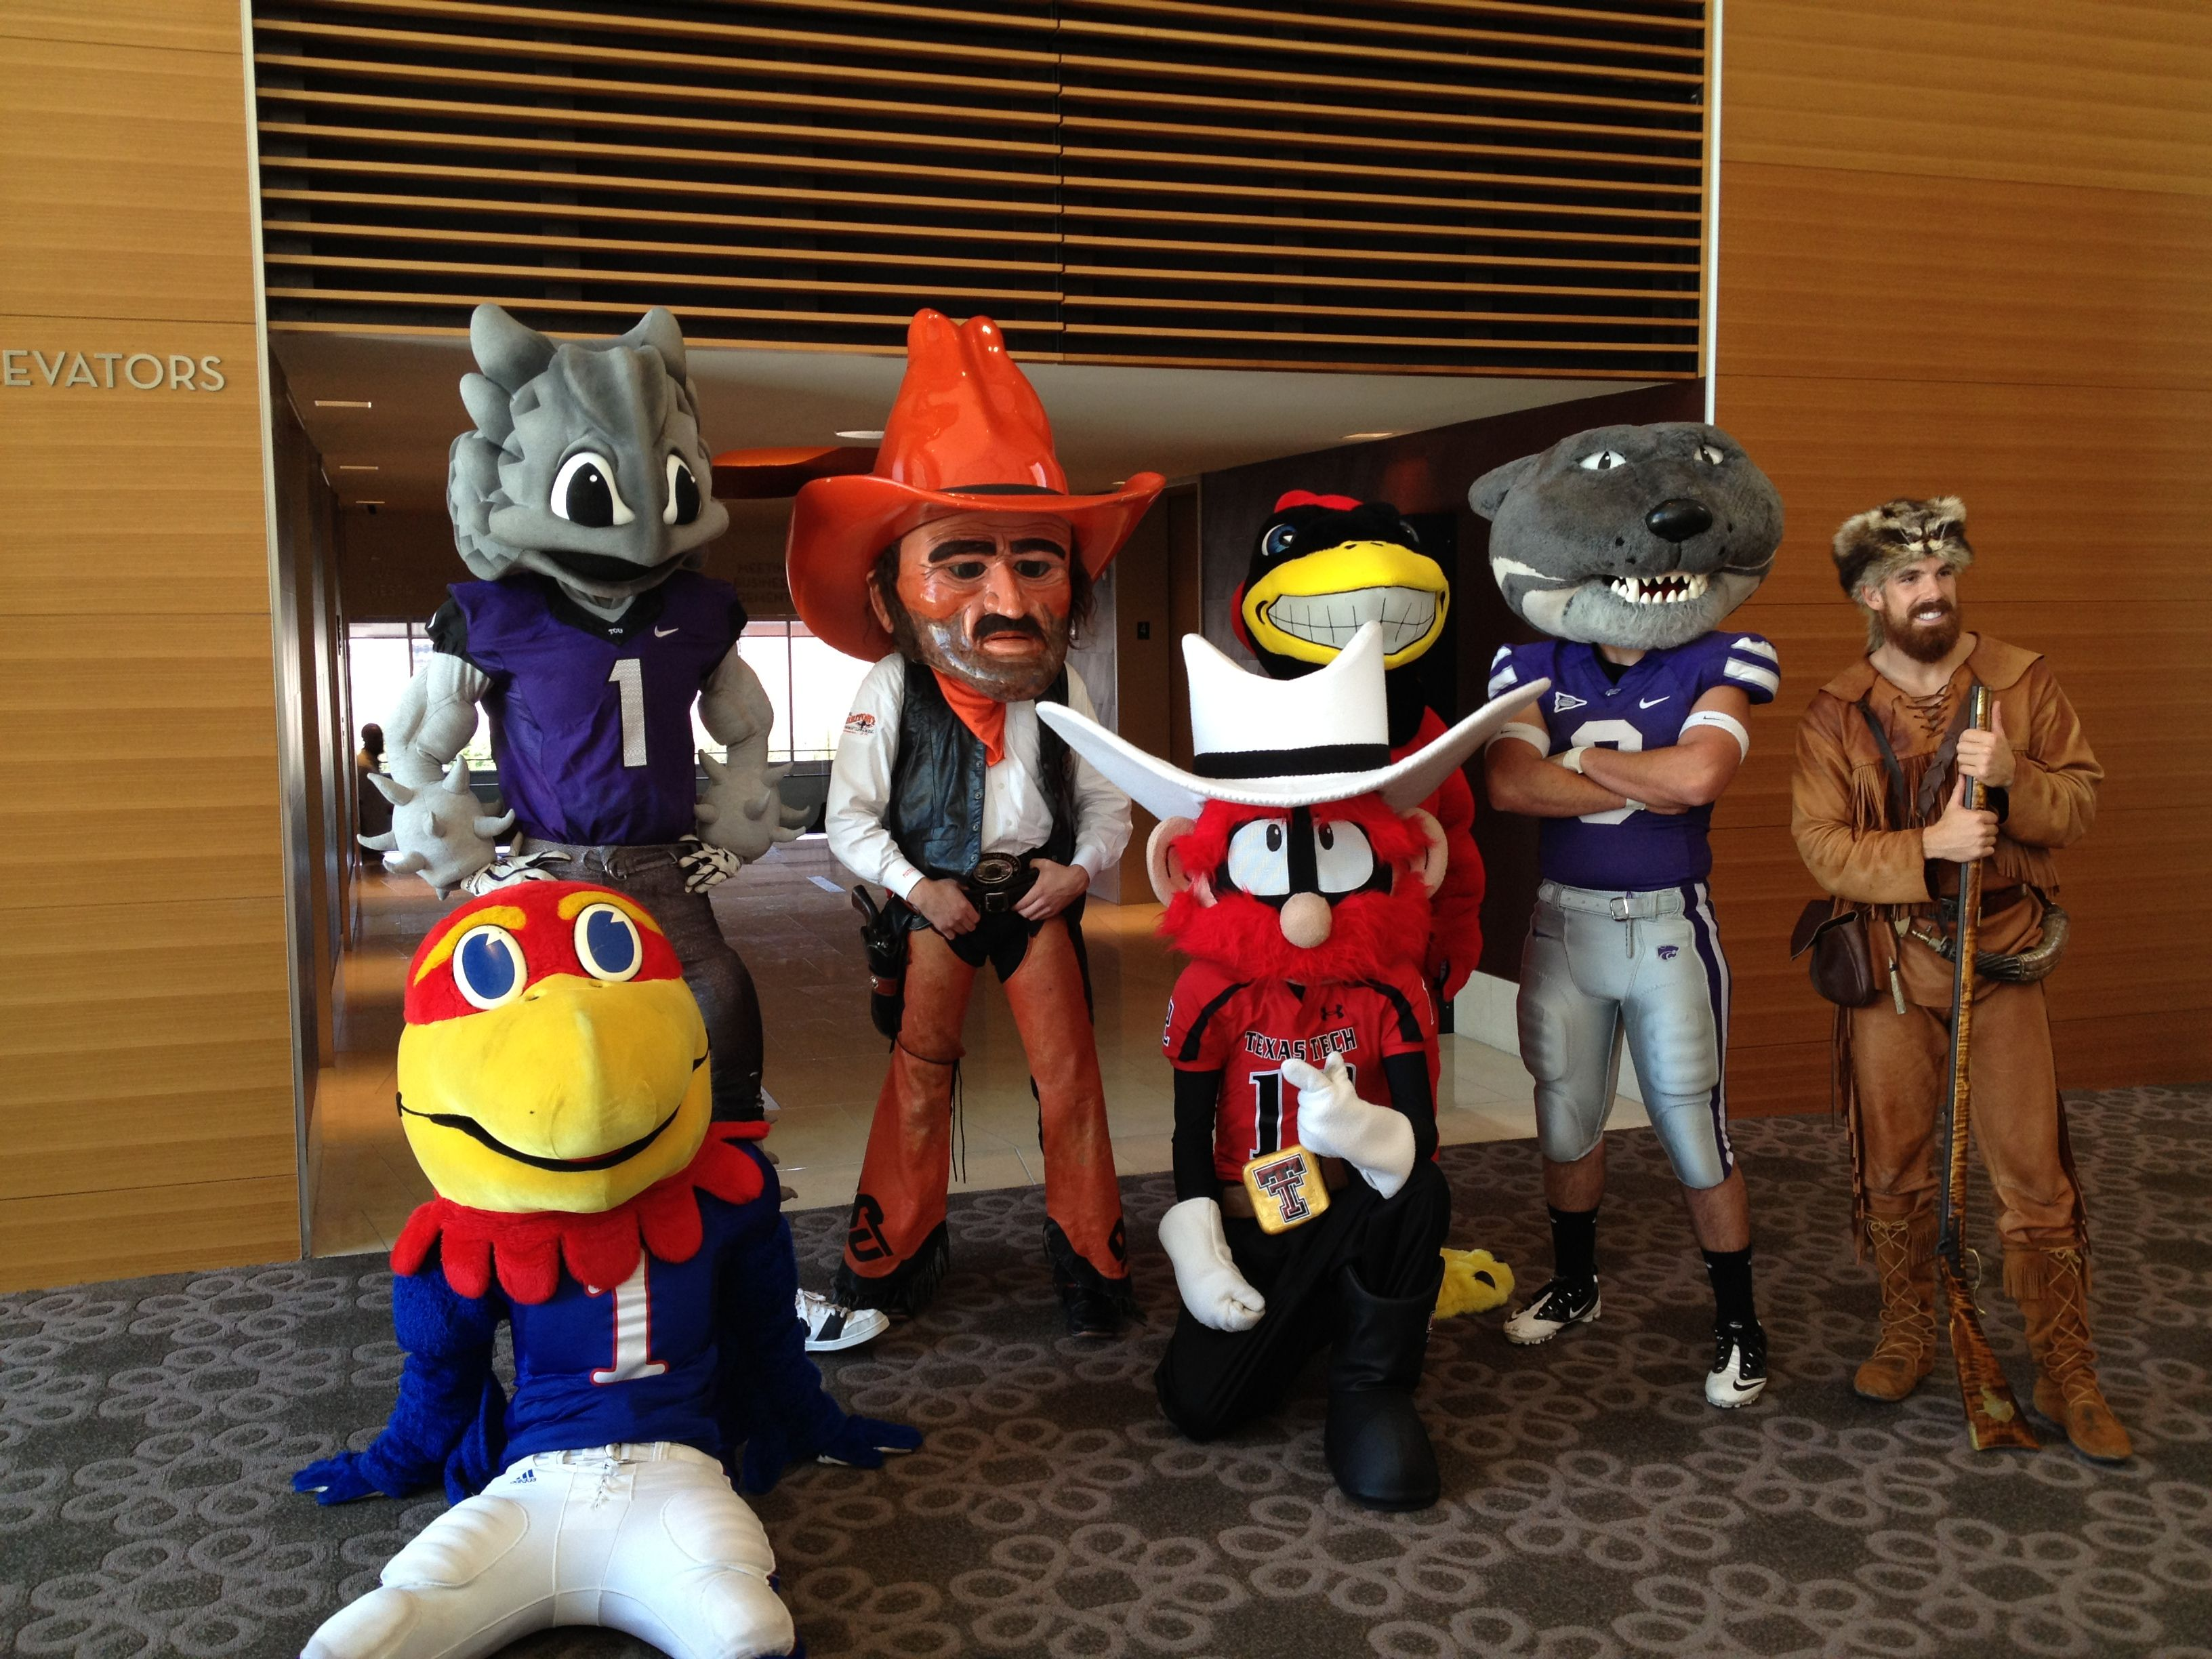 Mountaineer Jonathan Kimble with other Big 12 mascots at